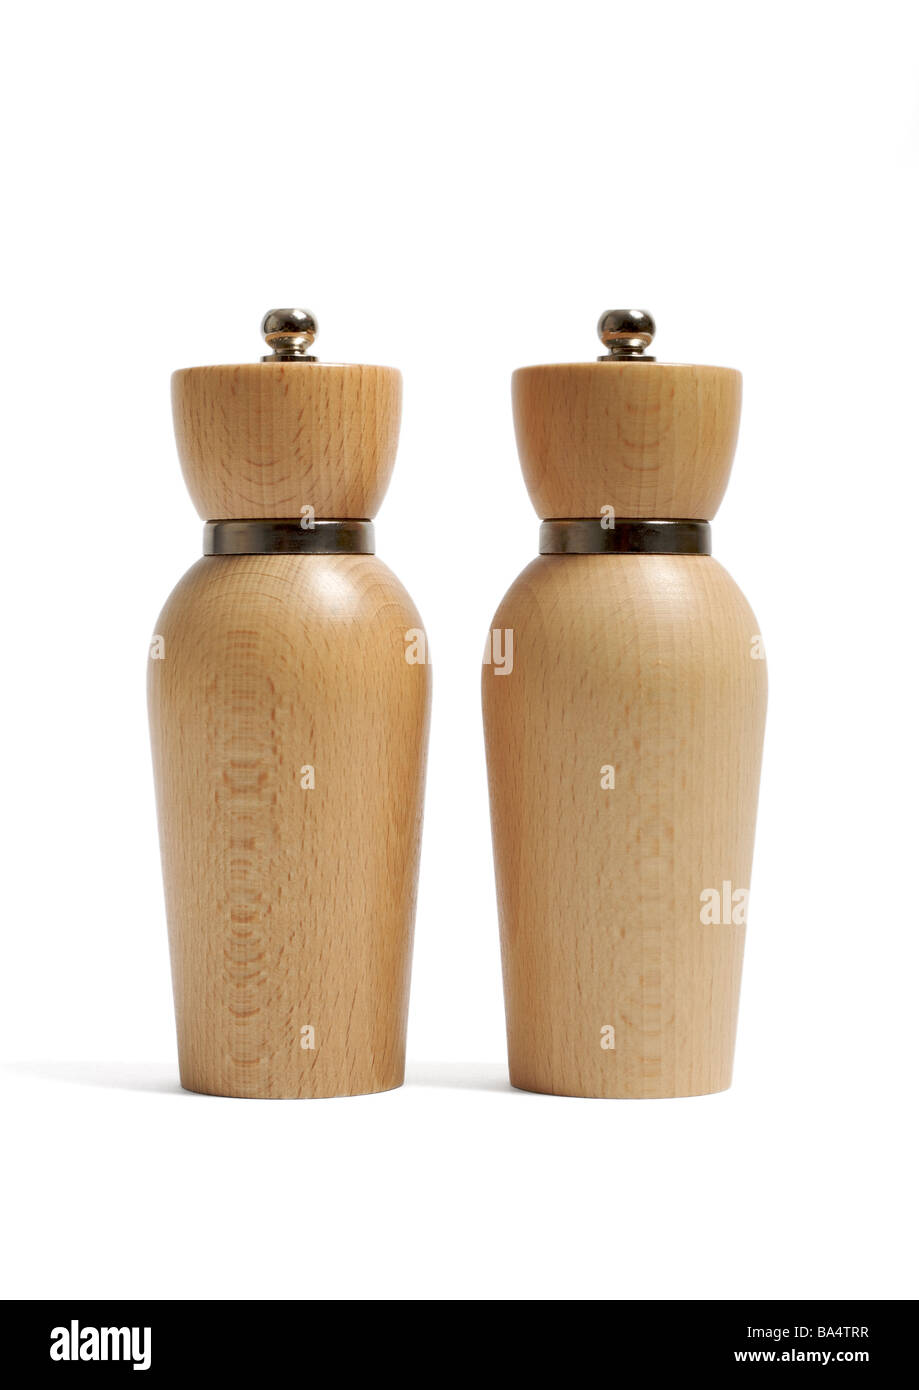 Wooden salt and pepper mills on white background - Stock Image